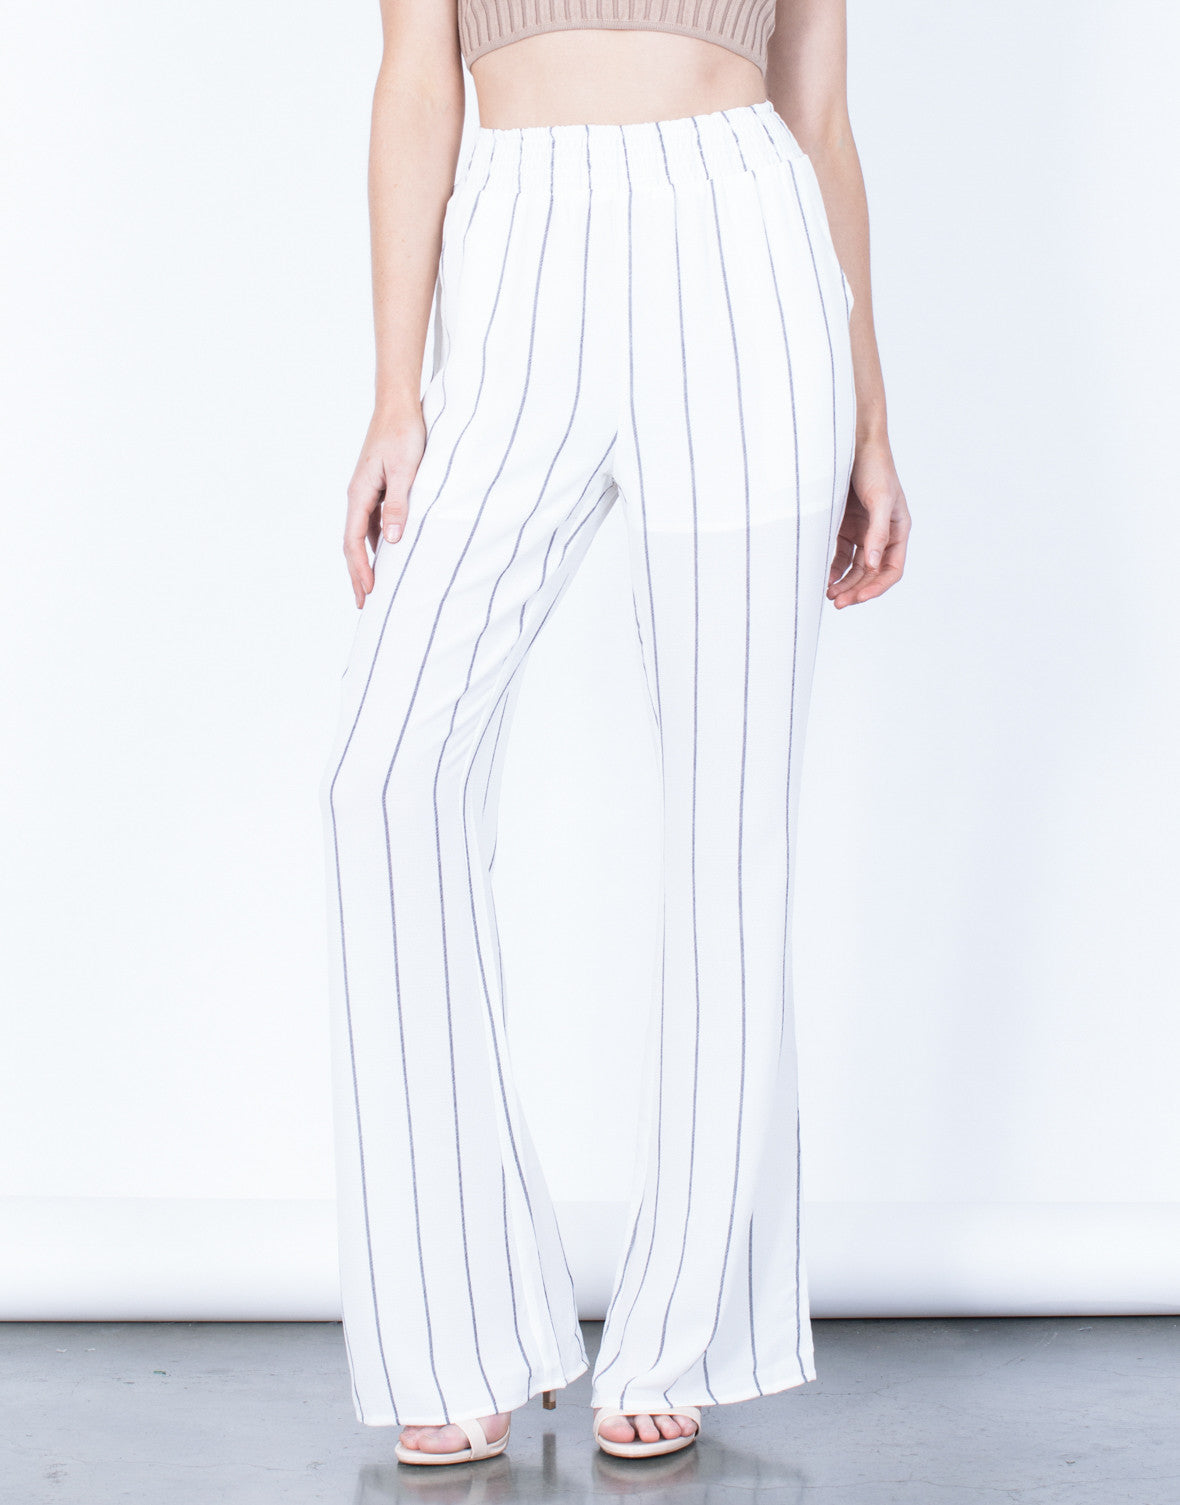 Breezy Striped Pants White Striped Pants Flowy Striped